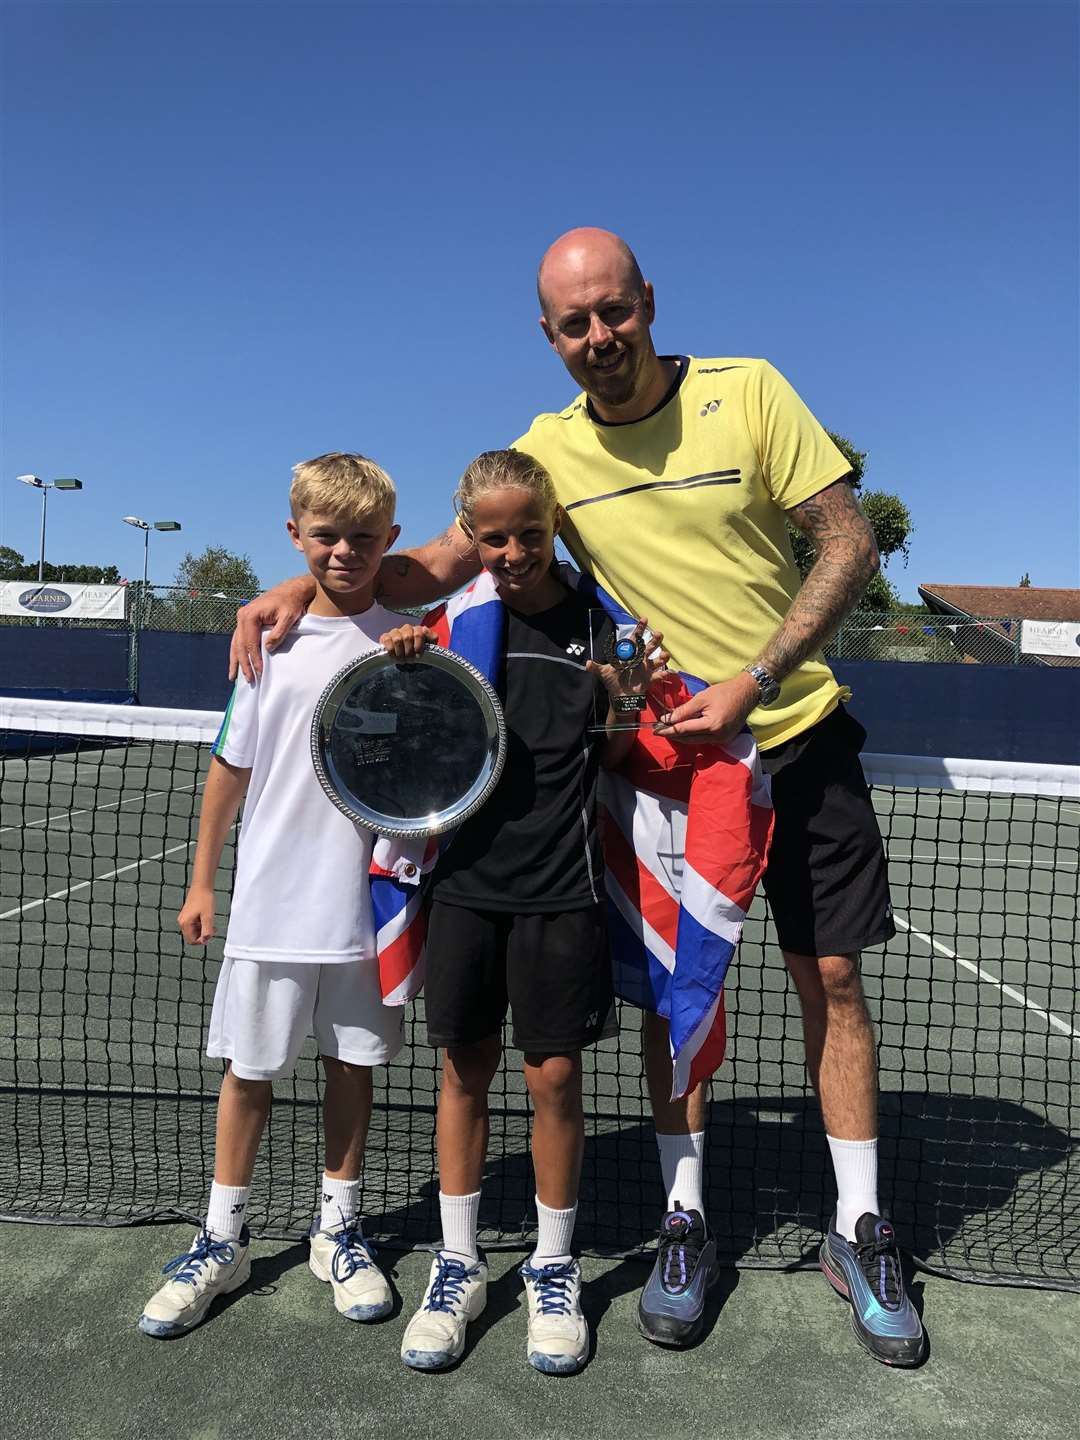 Freddie Clarke in white, Herbie Morris in Black, Paul Hope (Titan Tennis) in Yellow. Herbie (1st) and Freddie (4th) competed for Risbygate Tennis Club at the British U10 Championships. Picture: Contributed (16032725)